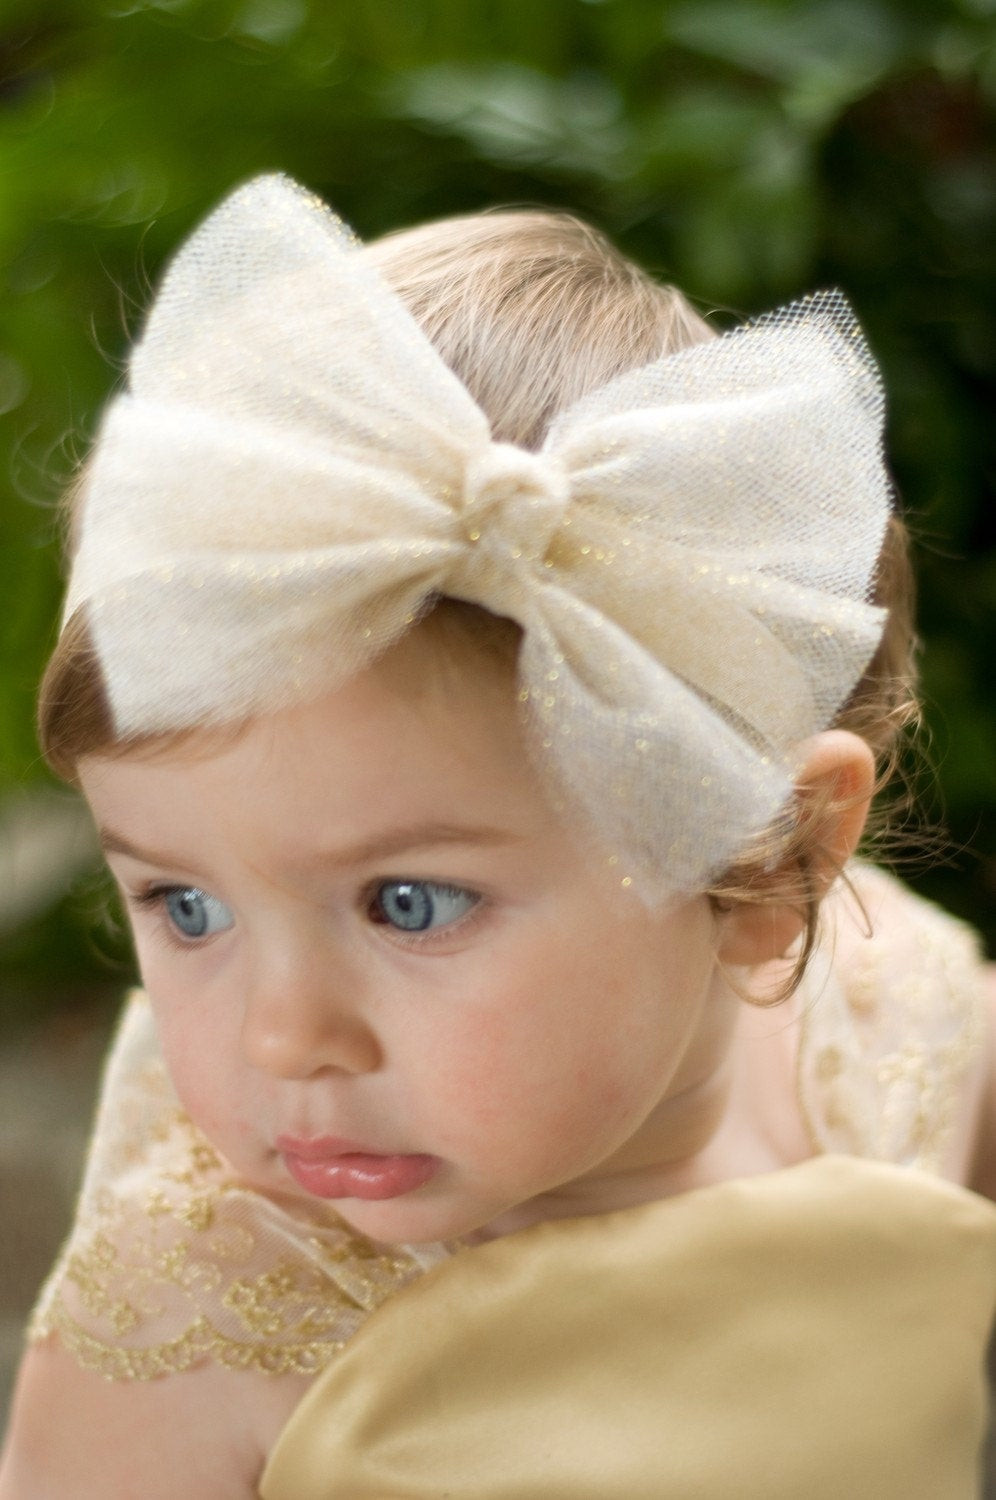 Best ideas about DIY Baby Bow Headband . Save or Pin Glittering Tulle Bow Headband or ClipAvailable in a Now.